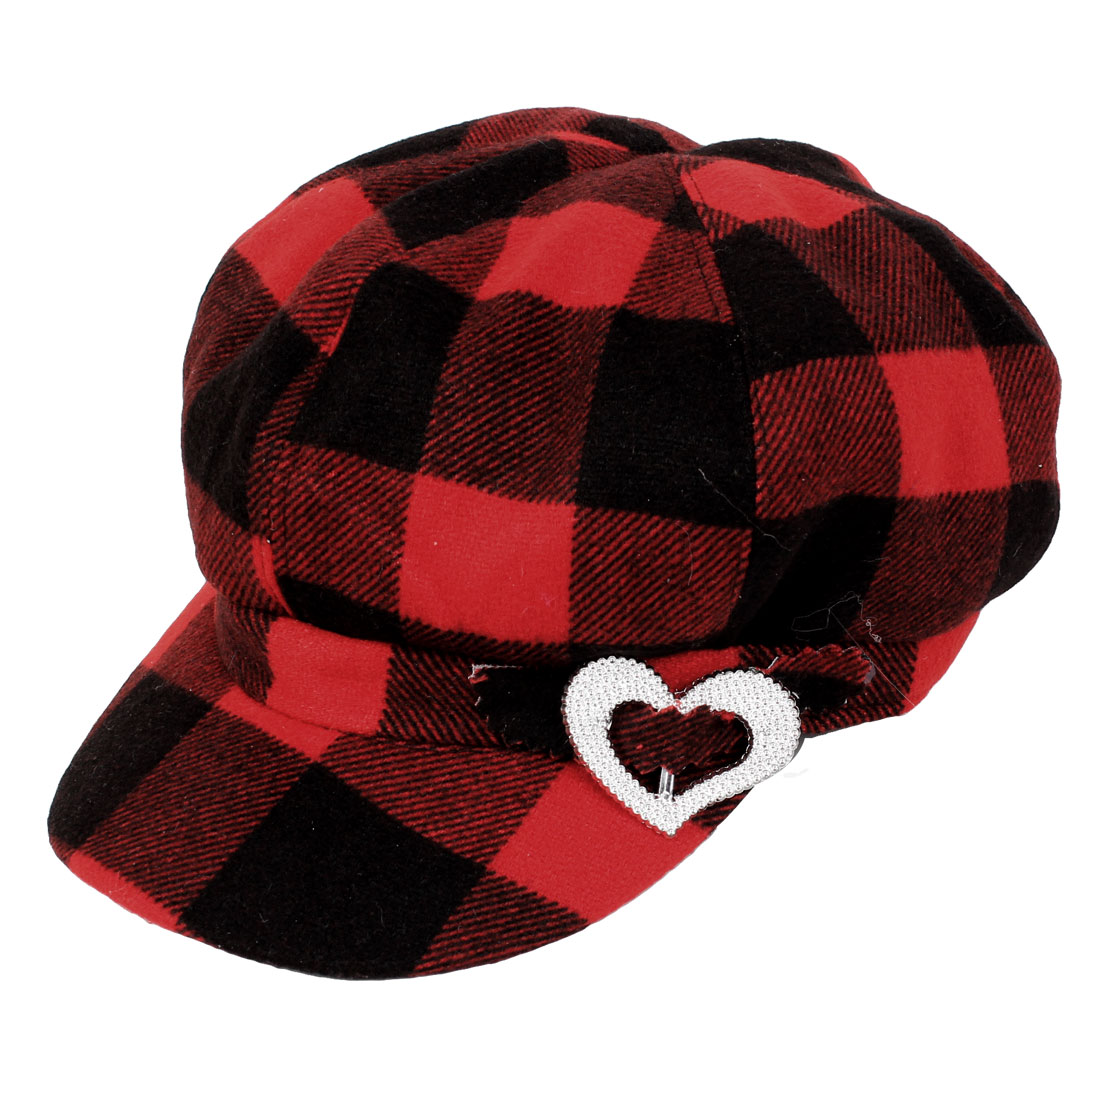 Black Red Cheker Pattern Heart Accent Leisure Hat Cap XL for Women